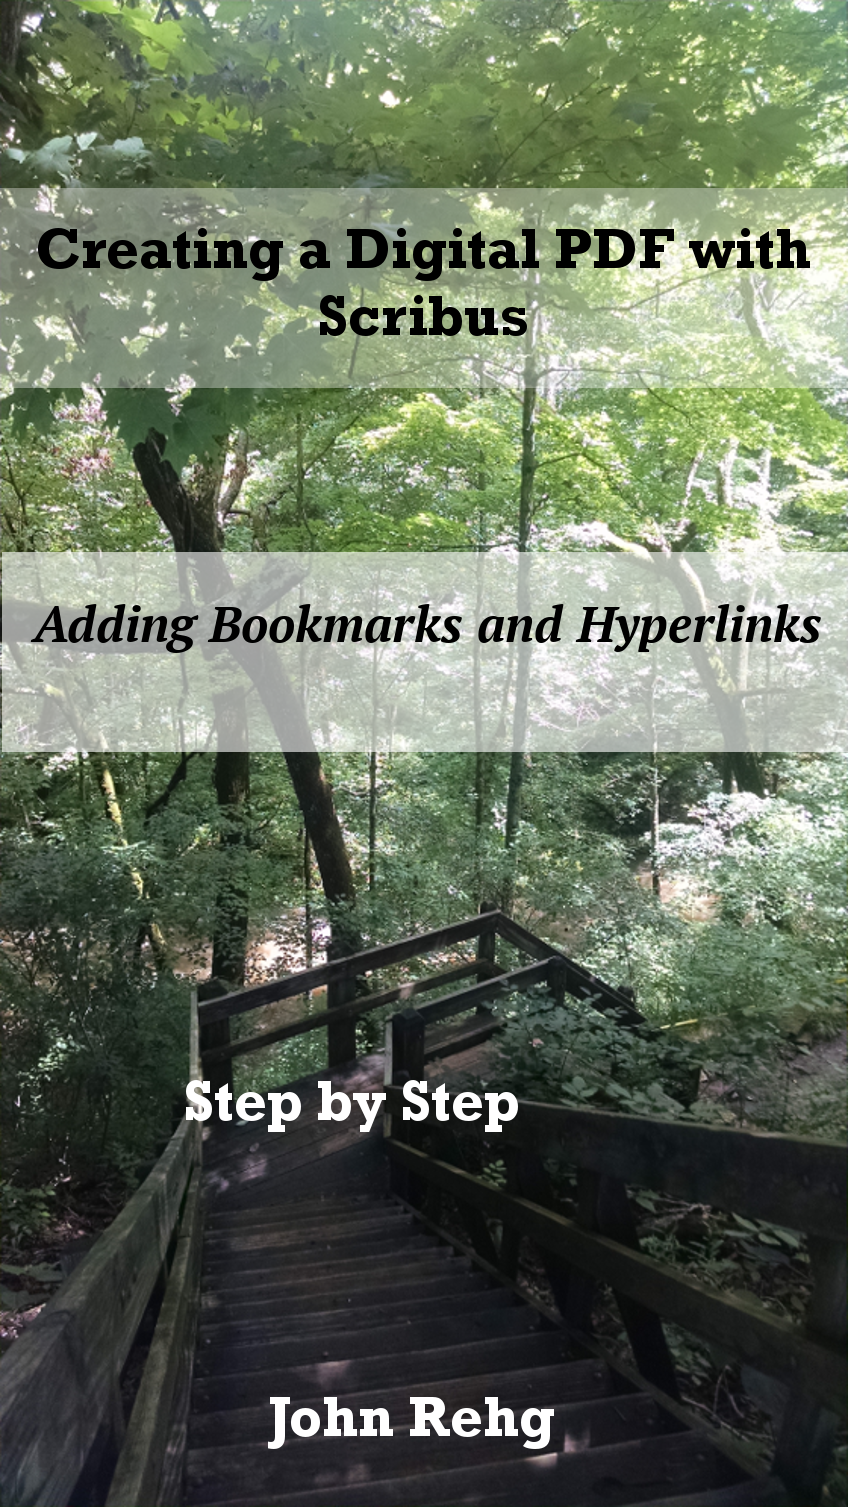 Bookmarks in a PDF